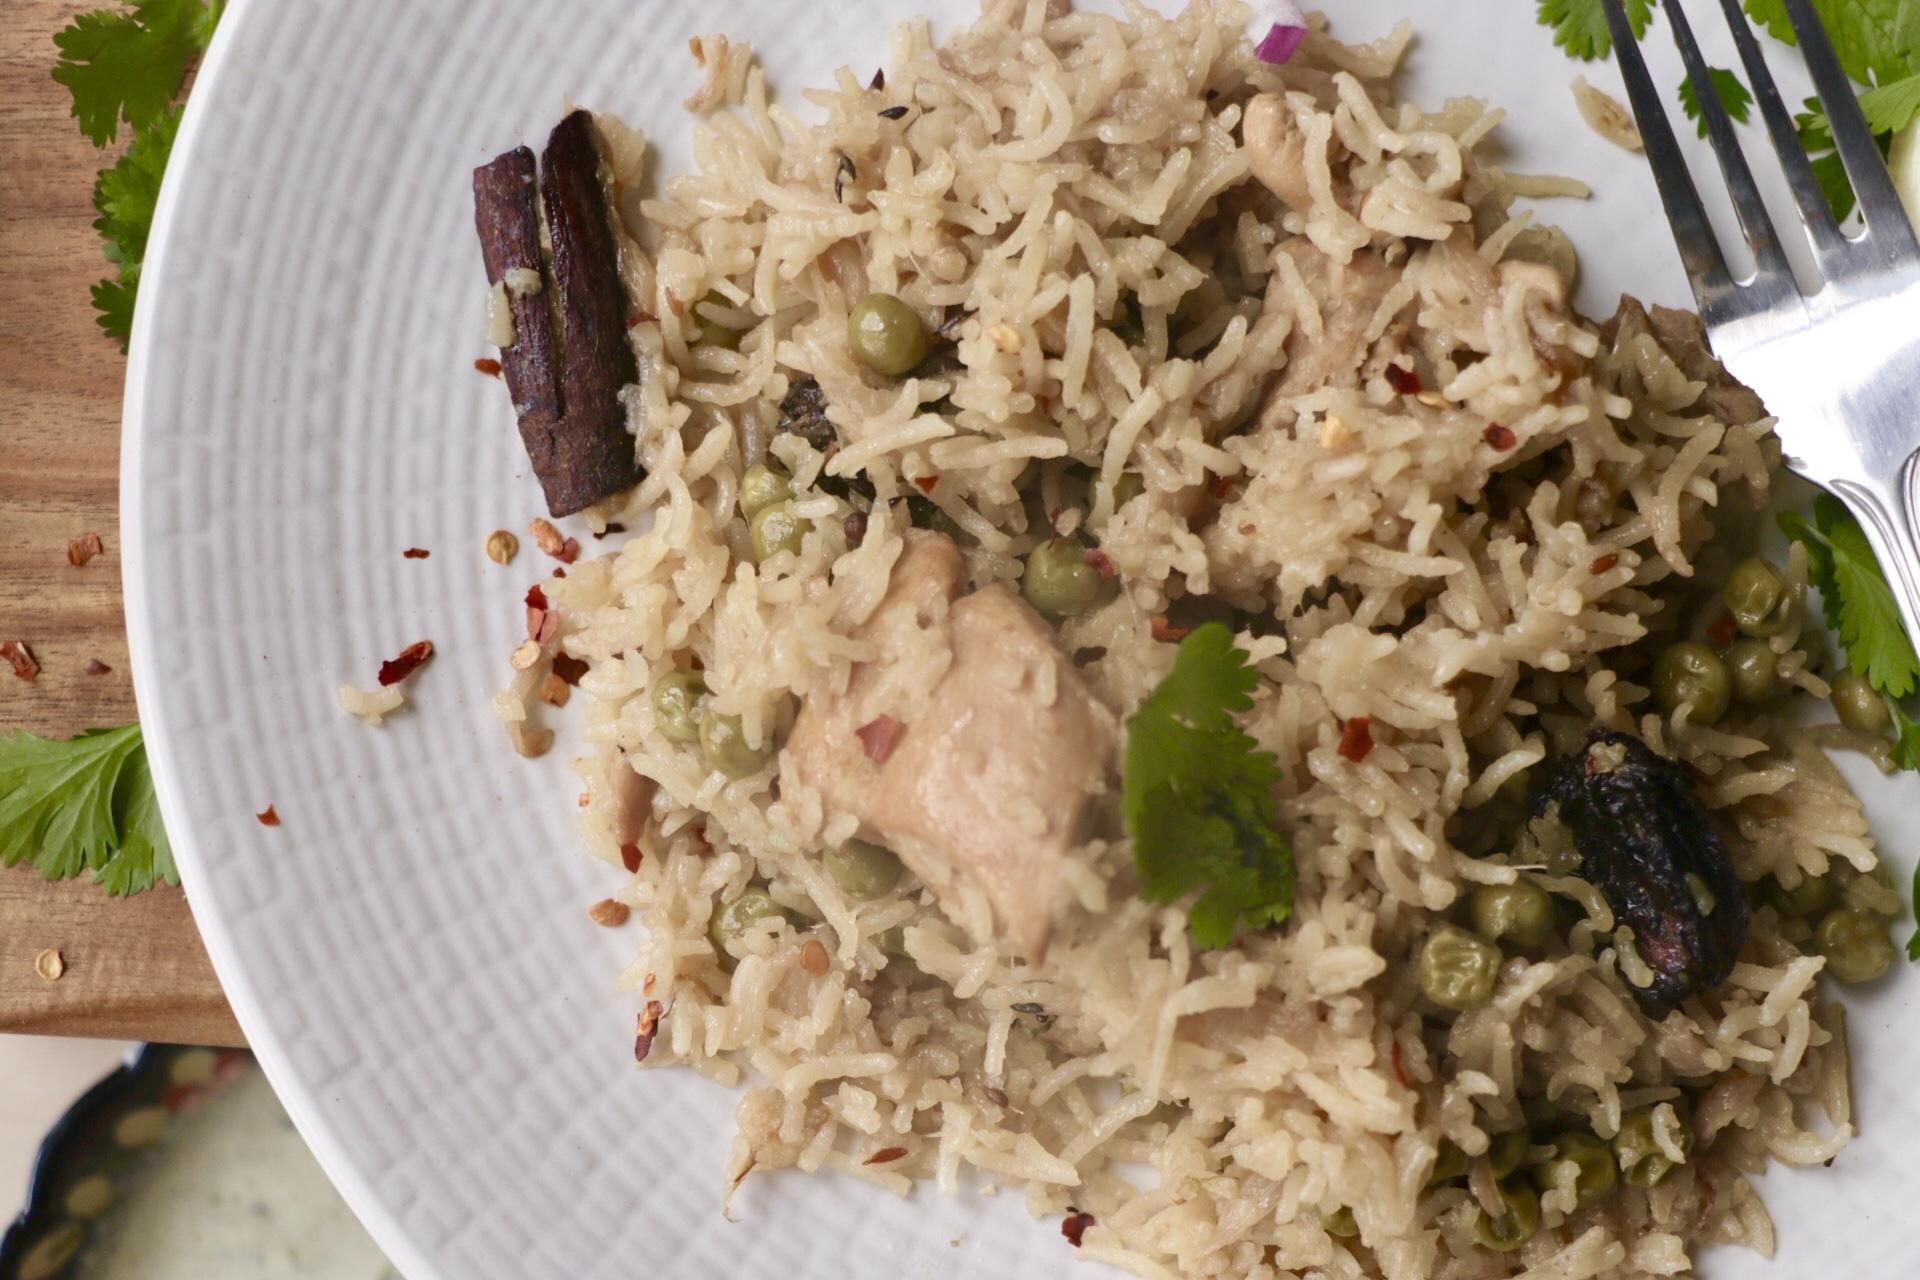 Pakistani Pulao Rice Rice Seasoned In Chicken Stock Black Cardamom